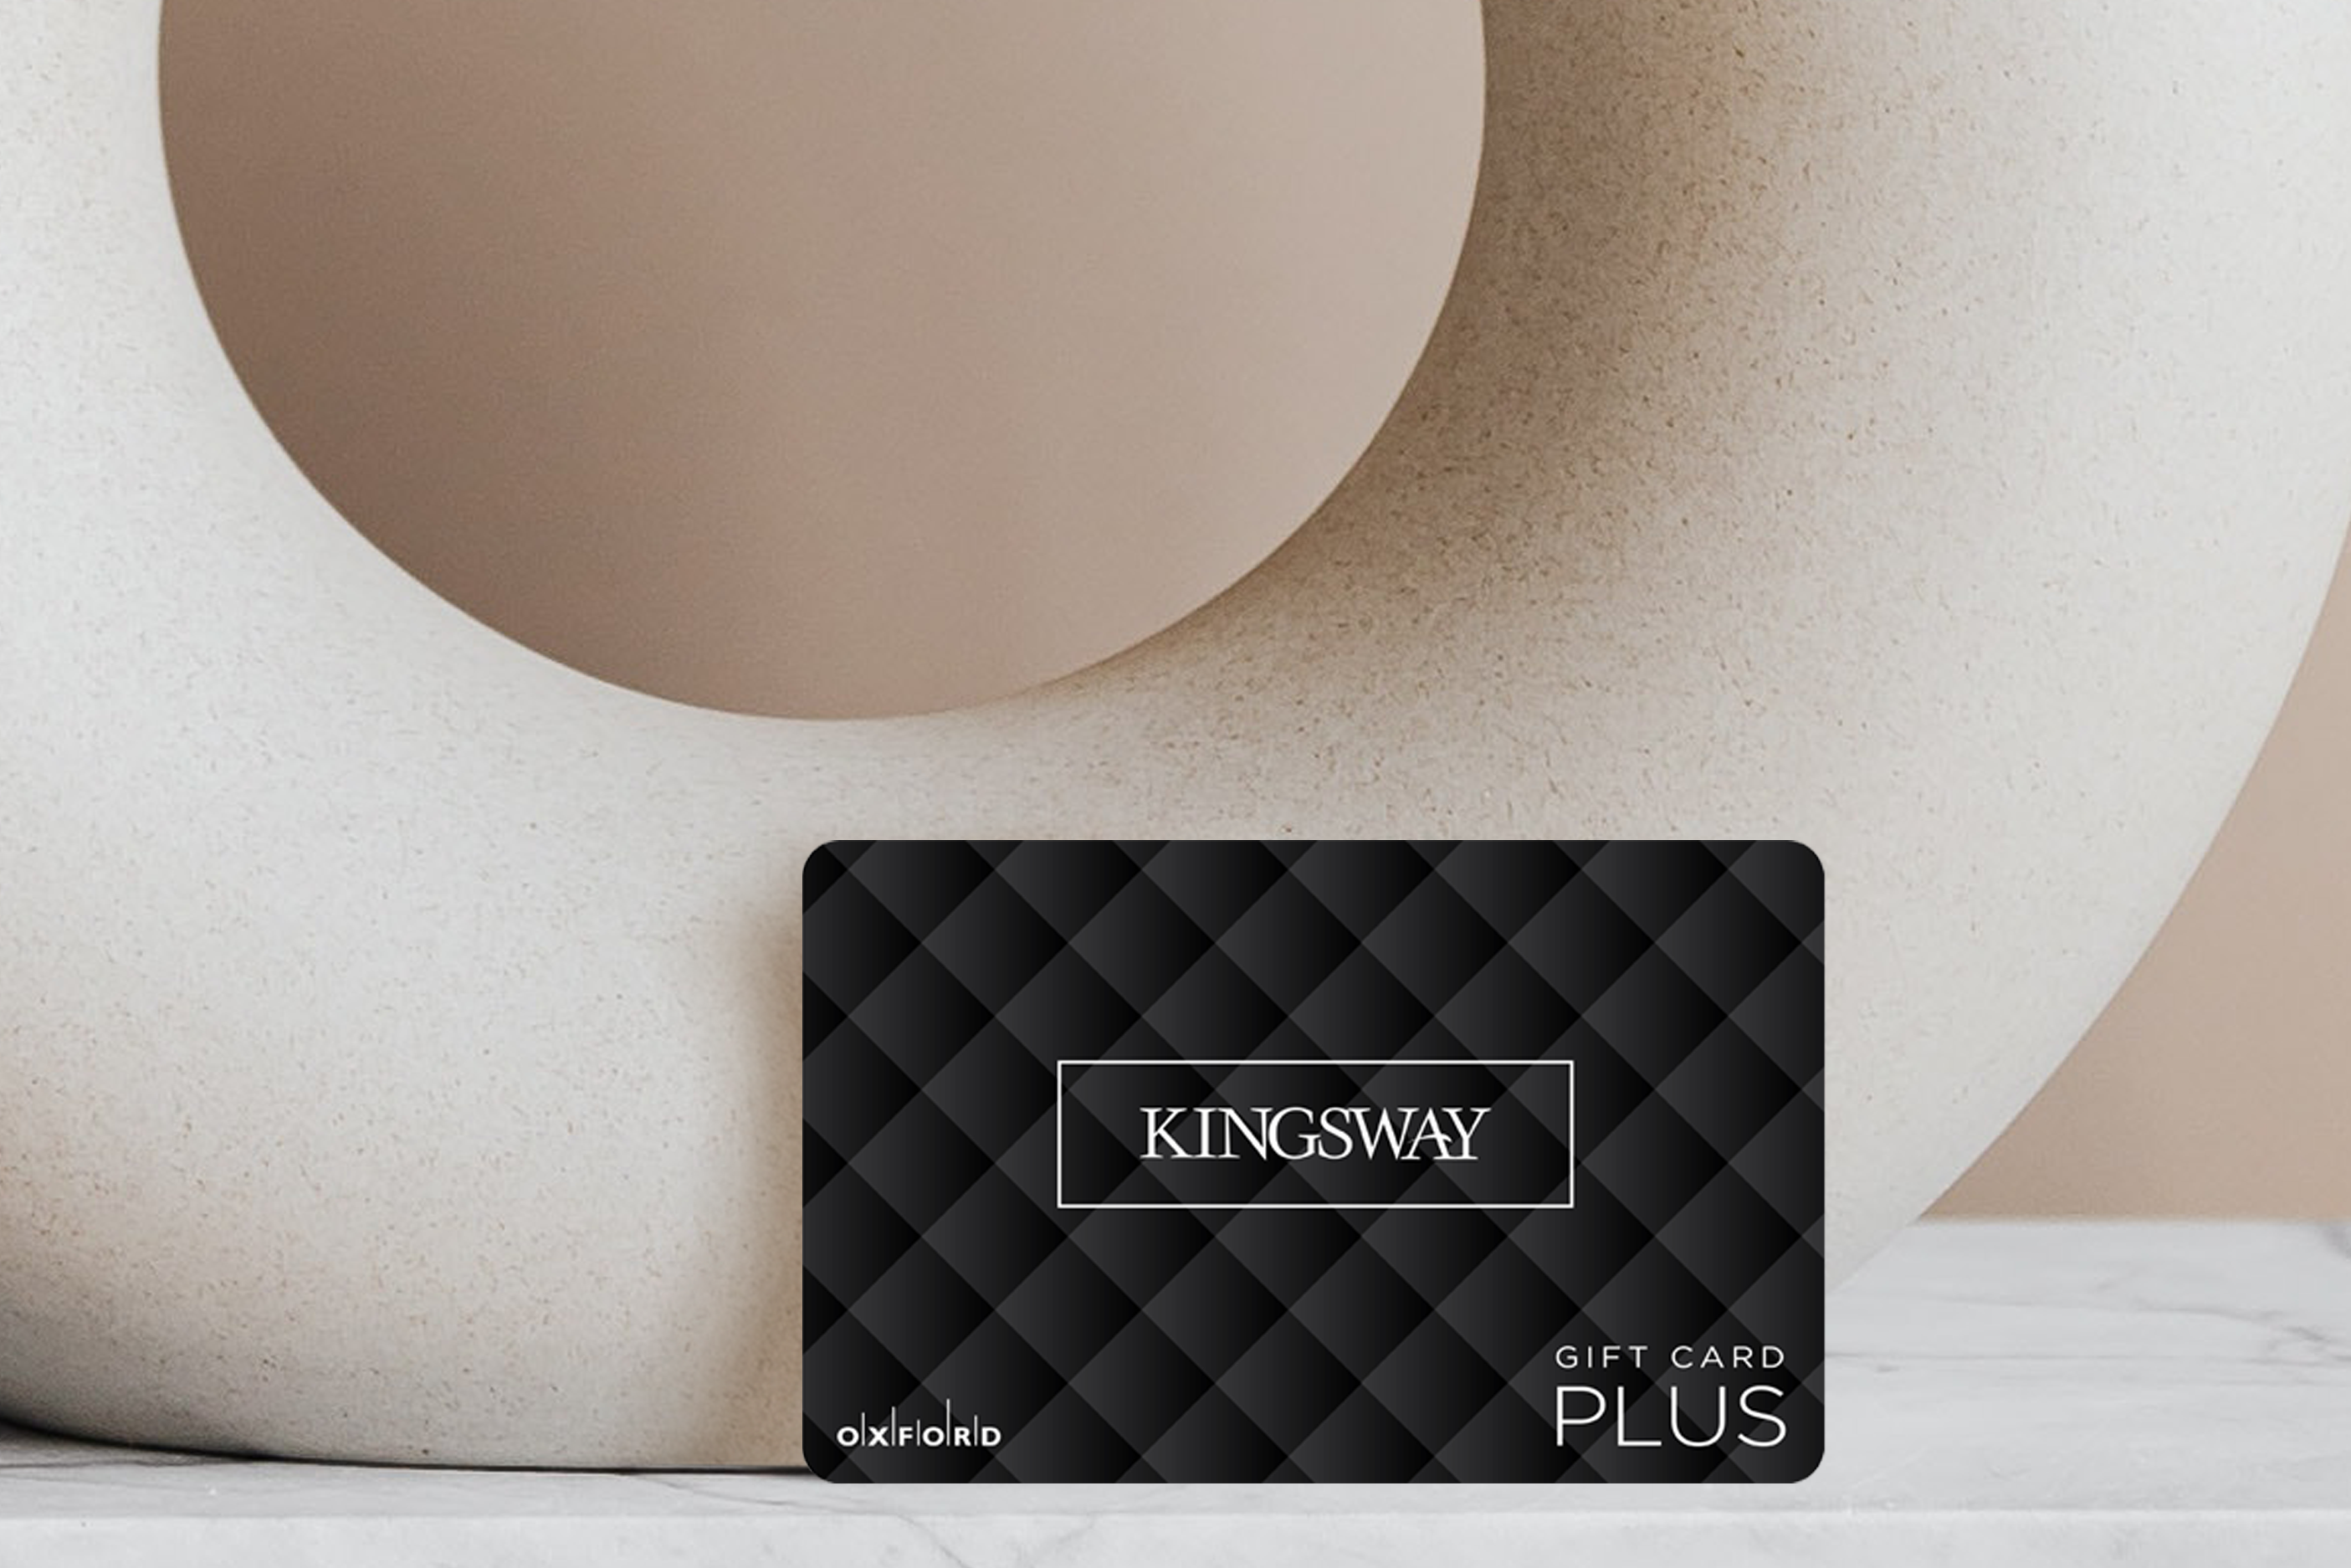 Kingsway black quilted gift card leaning against beige circular vase with a taupe wall.